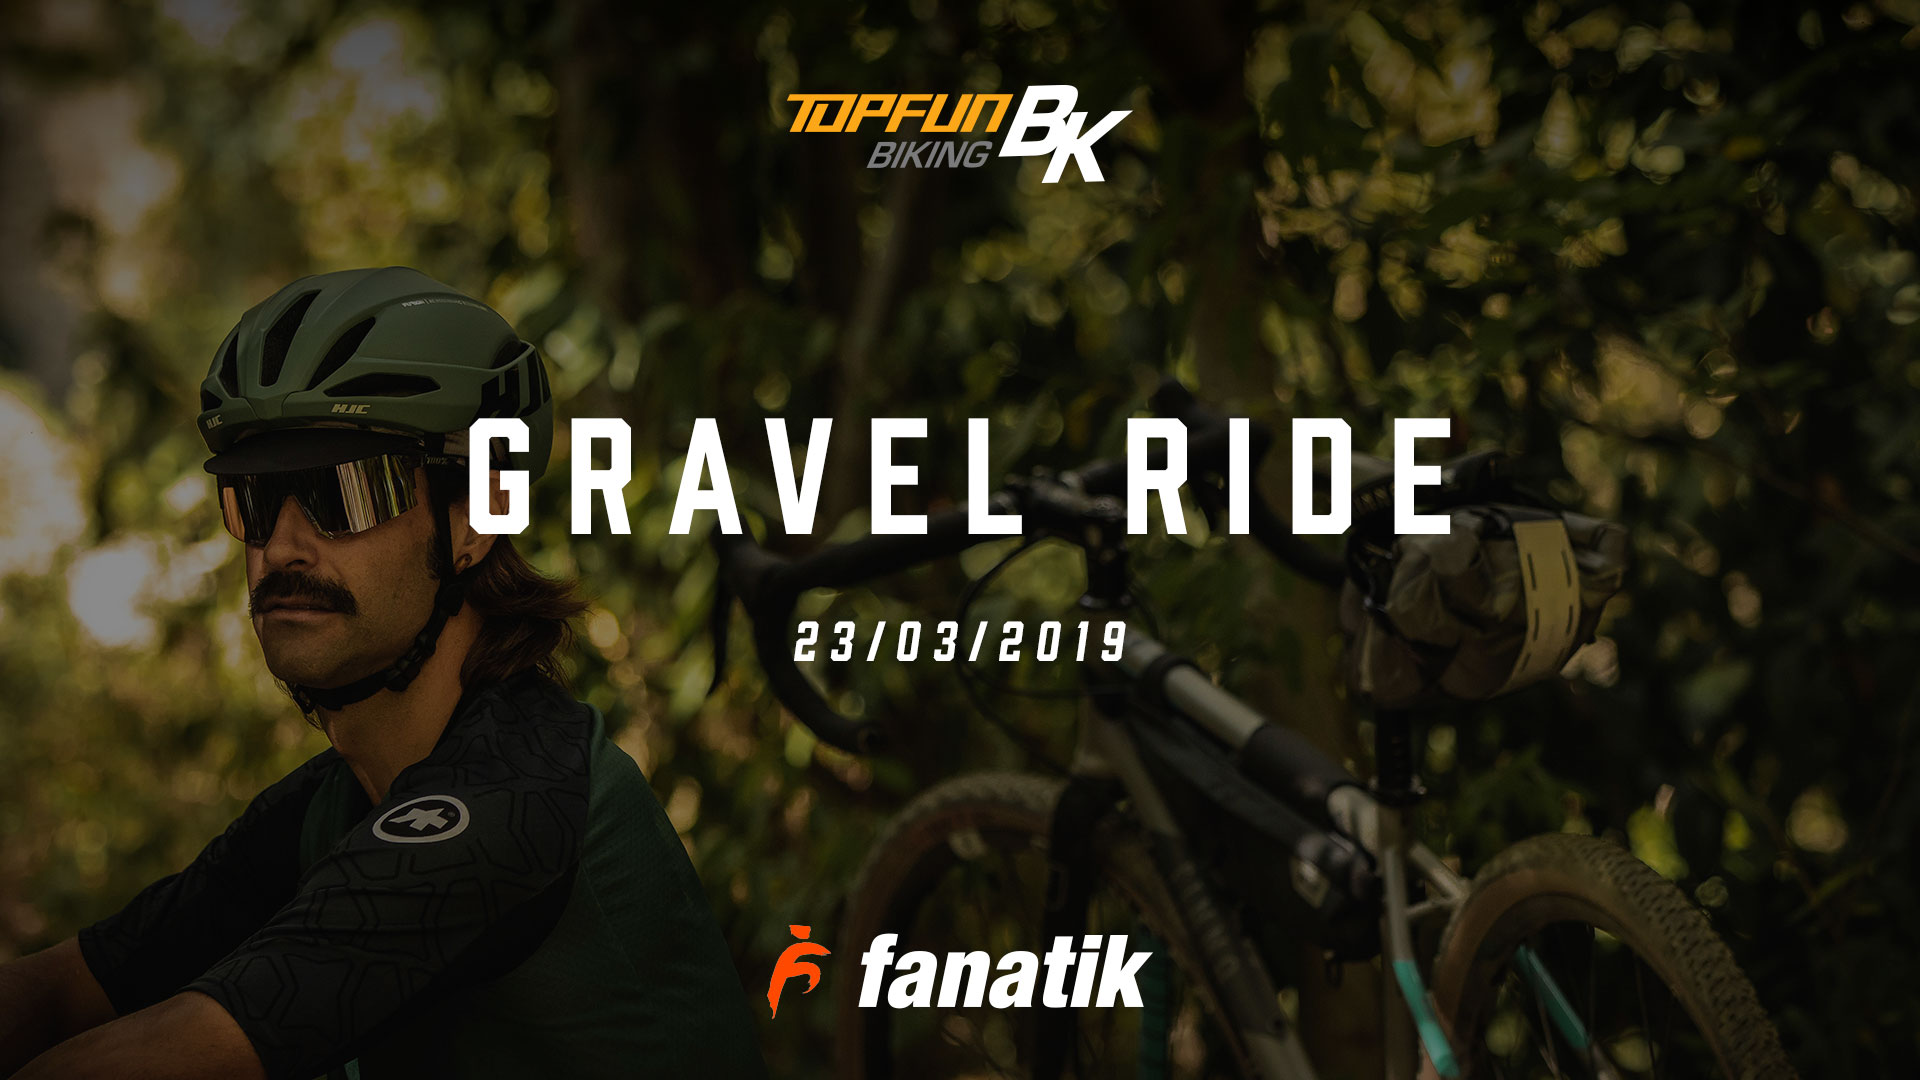 Fanatik-Gravel-Ride.jpg